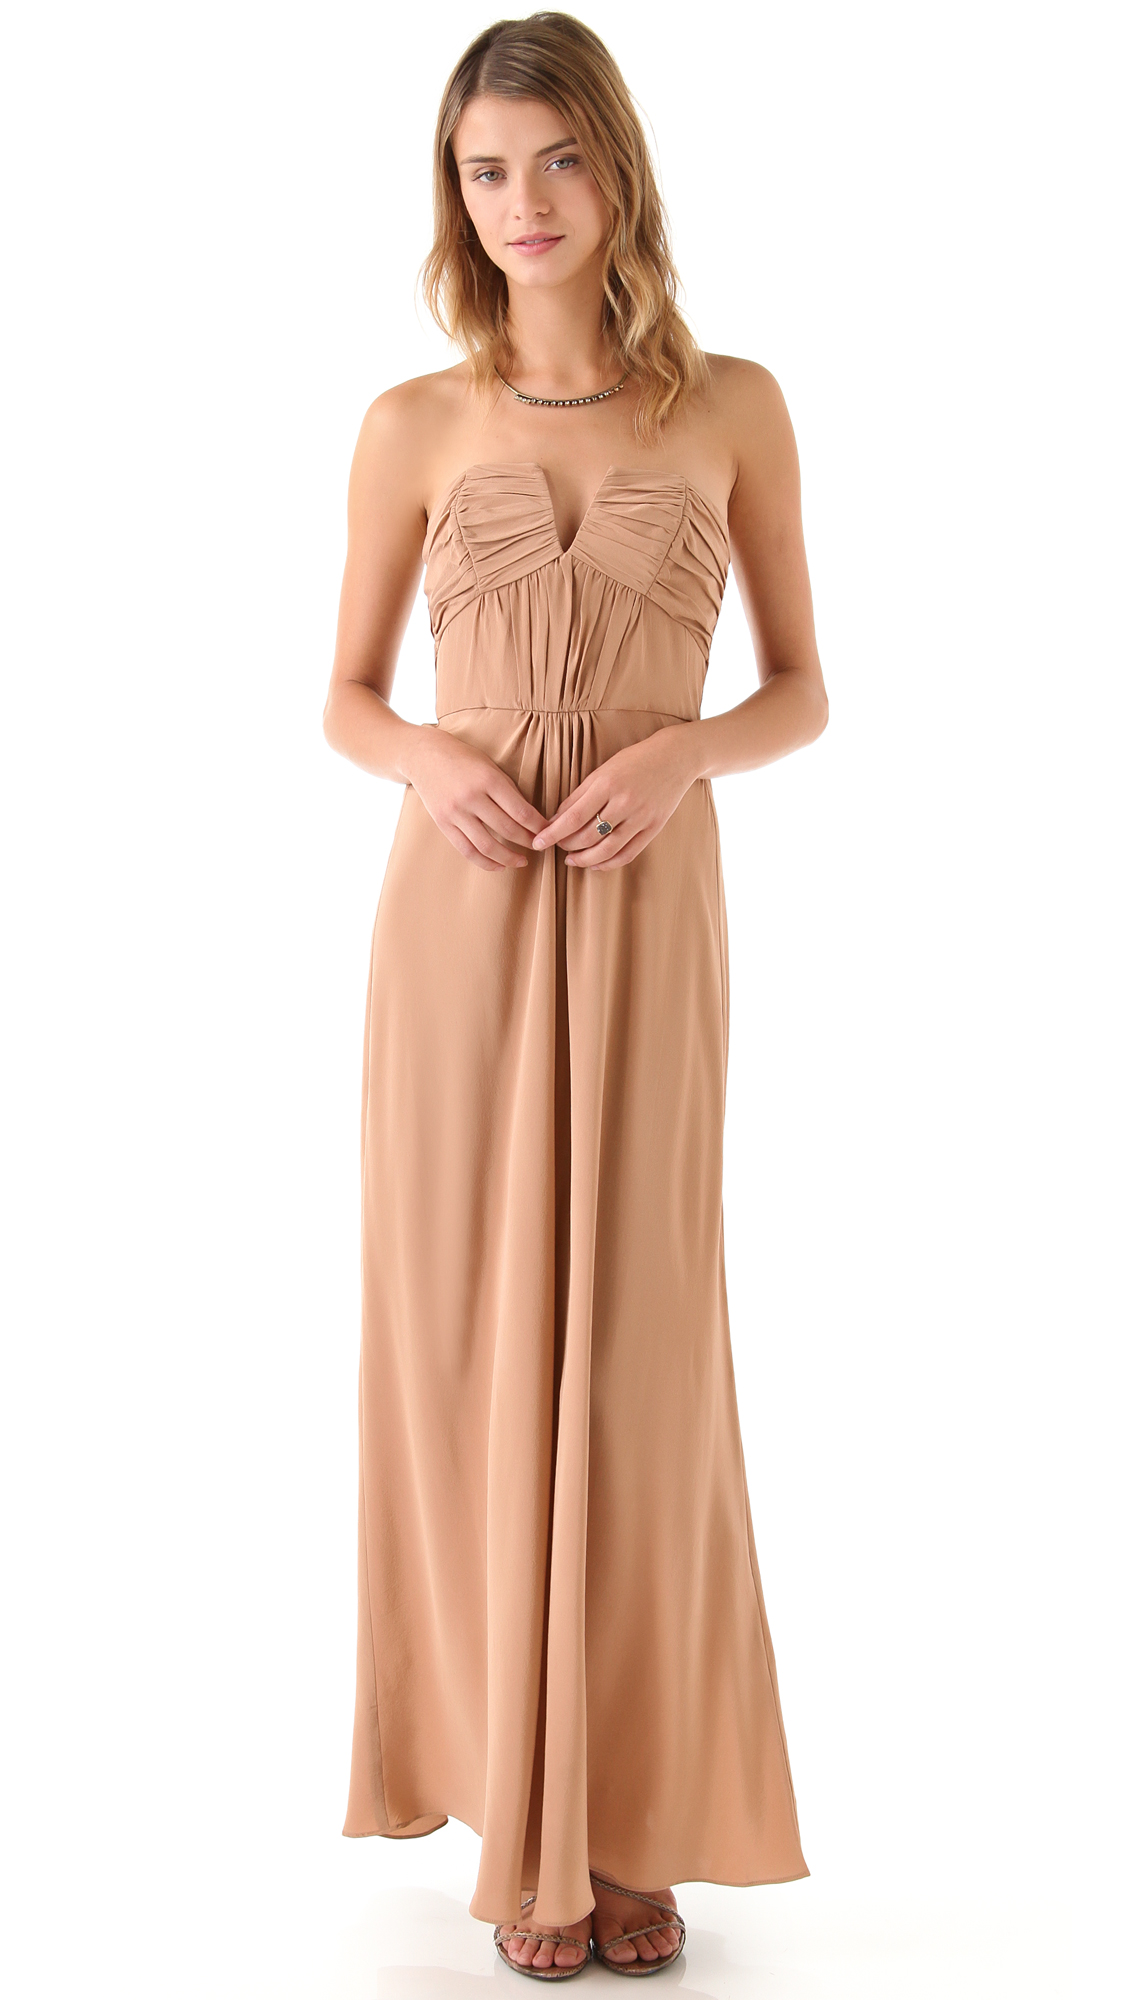 Zimmermann Ruched Strapless Gown in Natural | Lyst